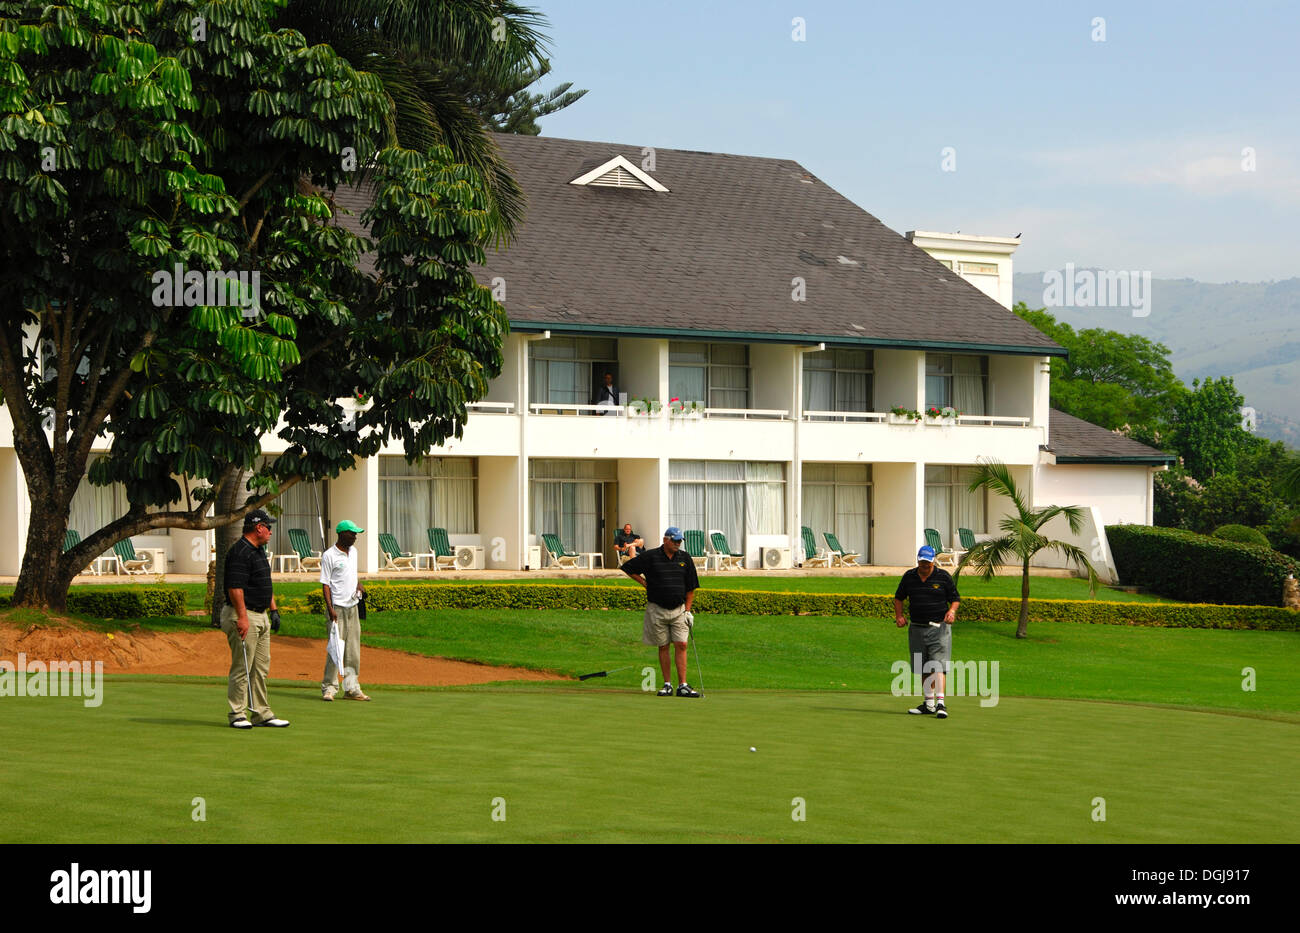 Golfers on the putting green in front of the Royal Swazi Spa Hotel, Ezulwini, Swaziland, Africa - Stock Image